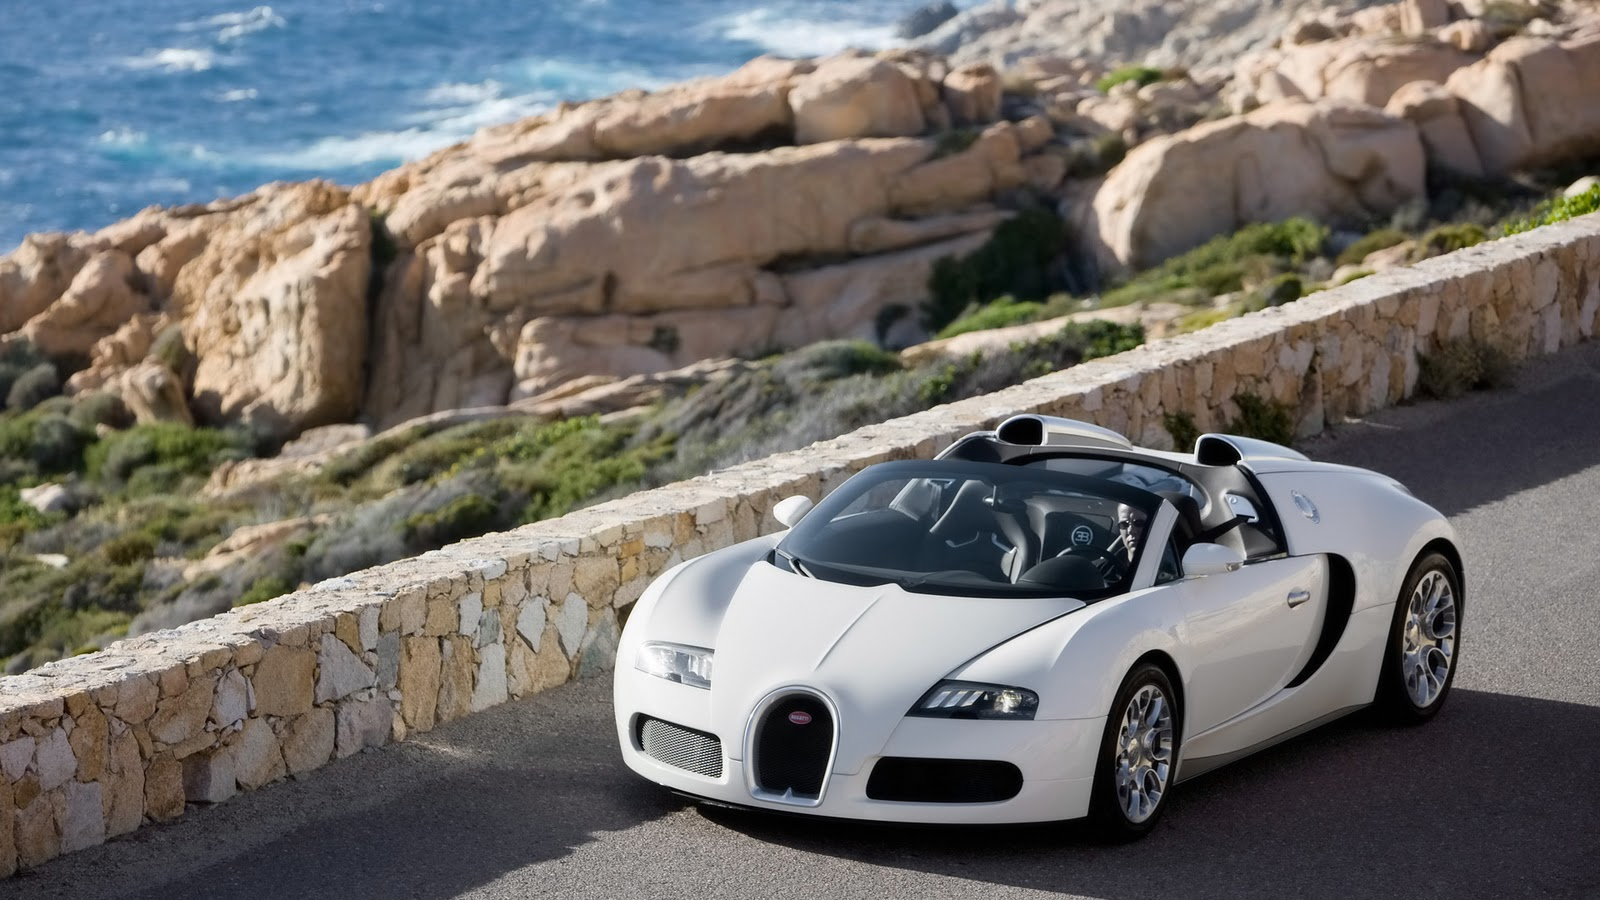 buggati veyron cool desktop - photo #17